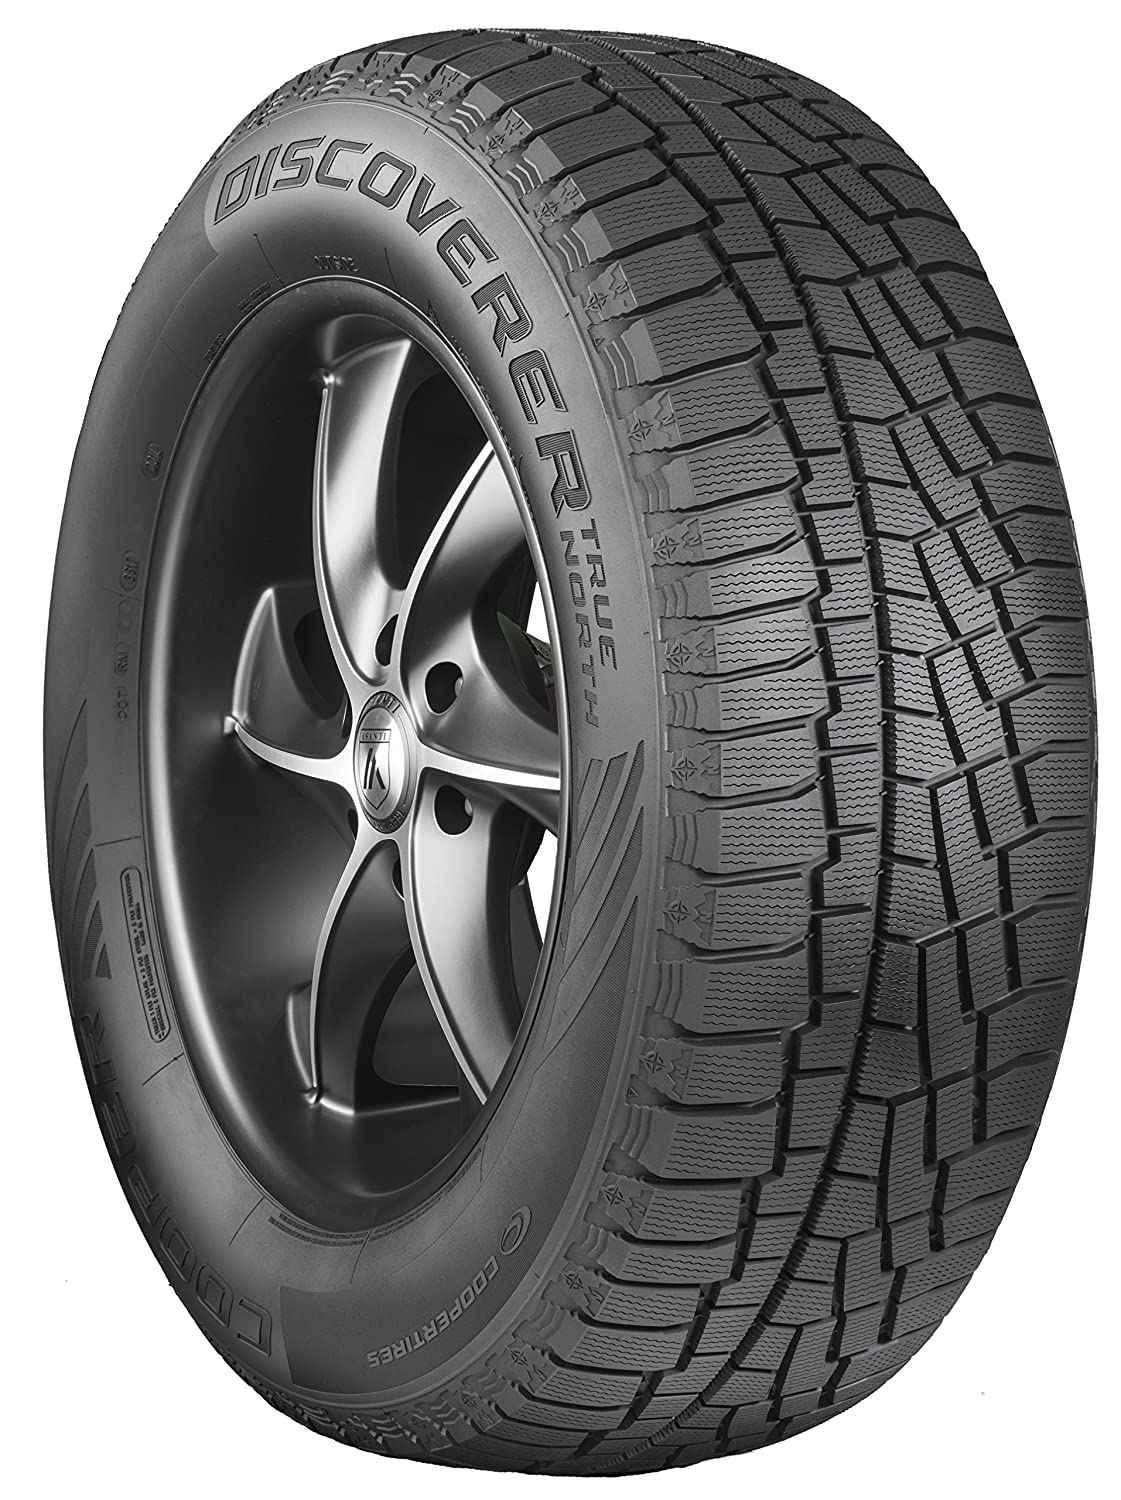 Cooper Discoverer True North Studless-Winter Radial Tire - 245/60R18 105T 90000029757